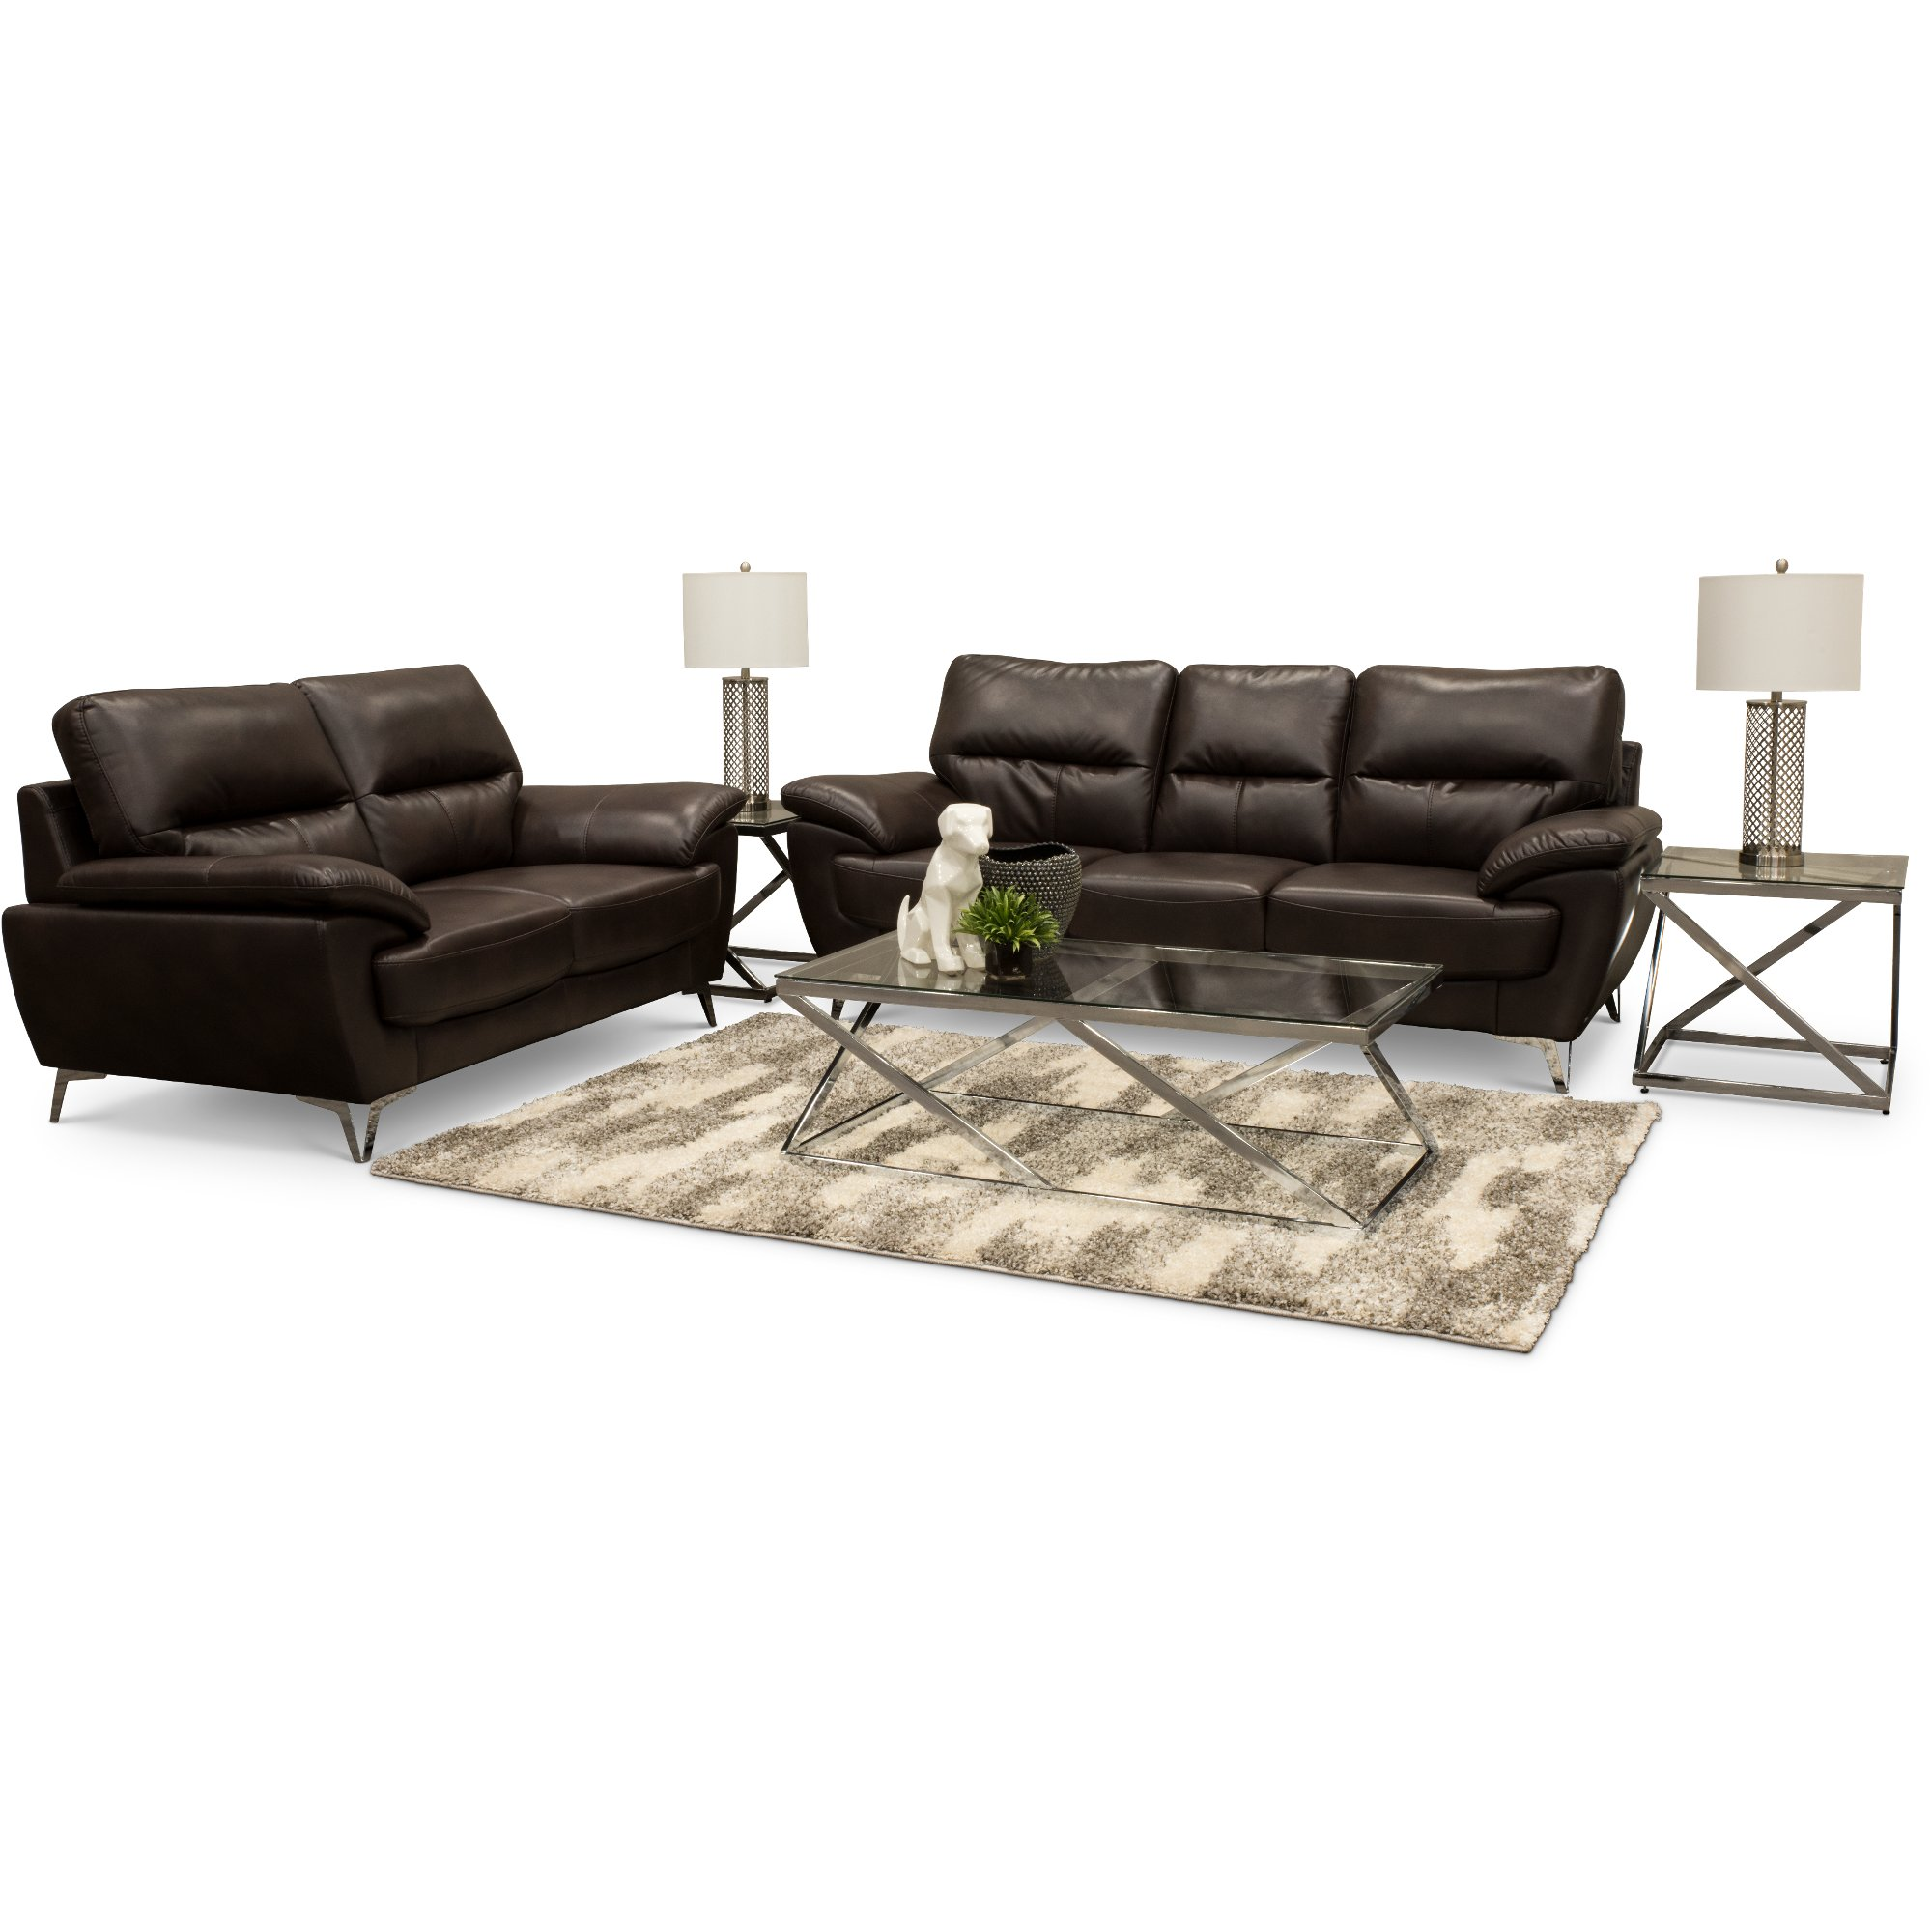 Contemporary Chocolate Brown 7 Piece Living Room Set - Galactica ...